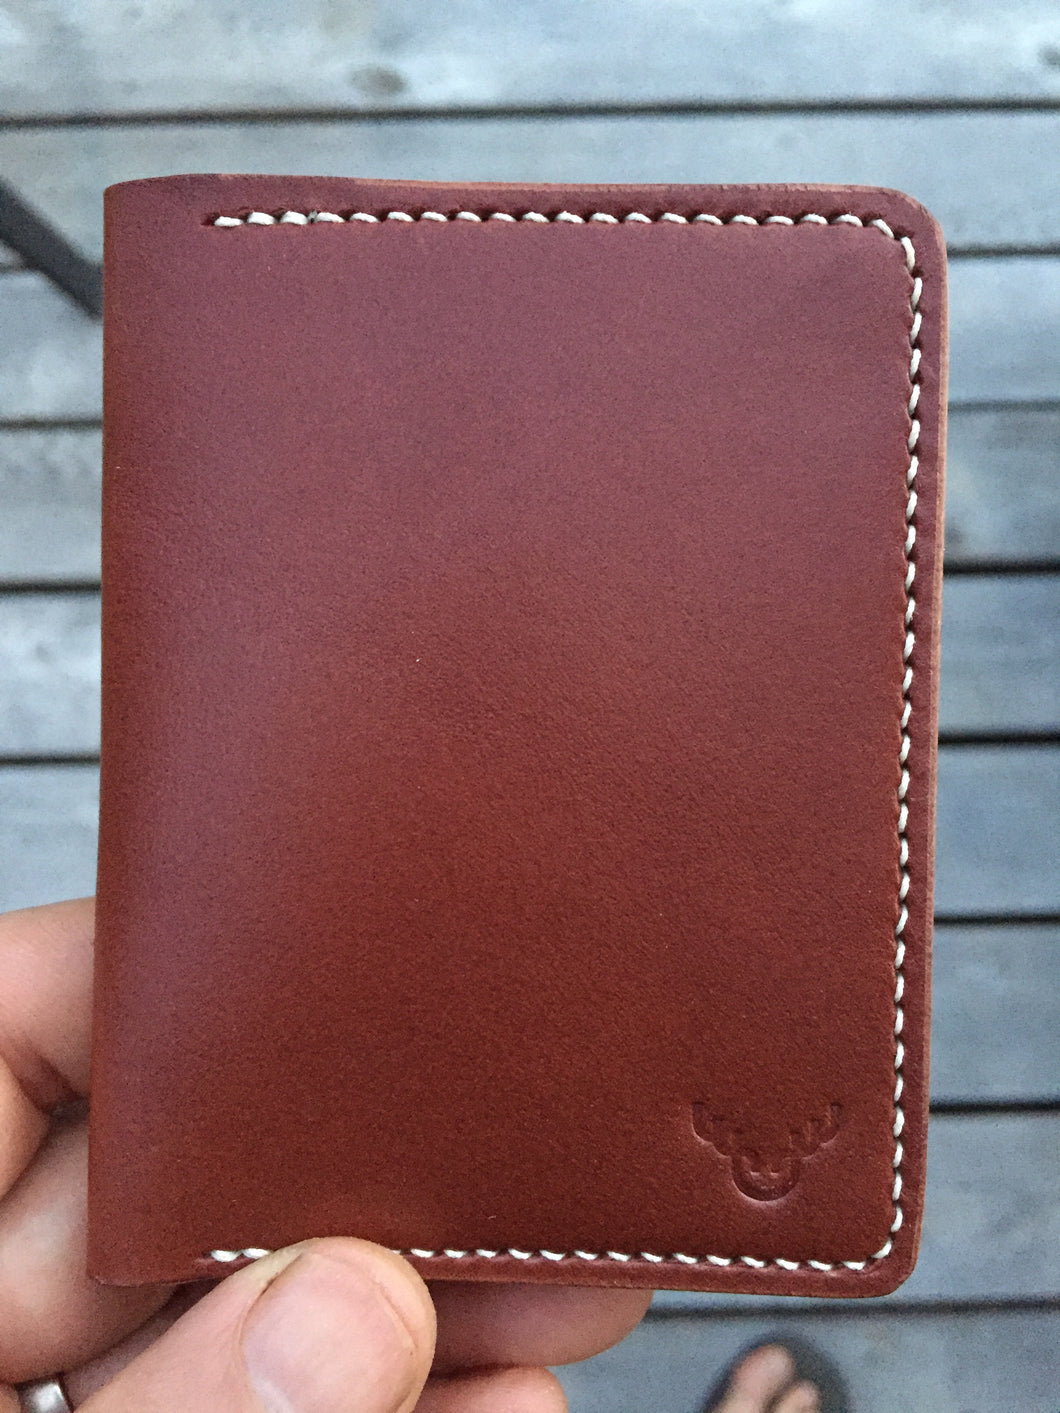 Slicker wallet